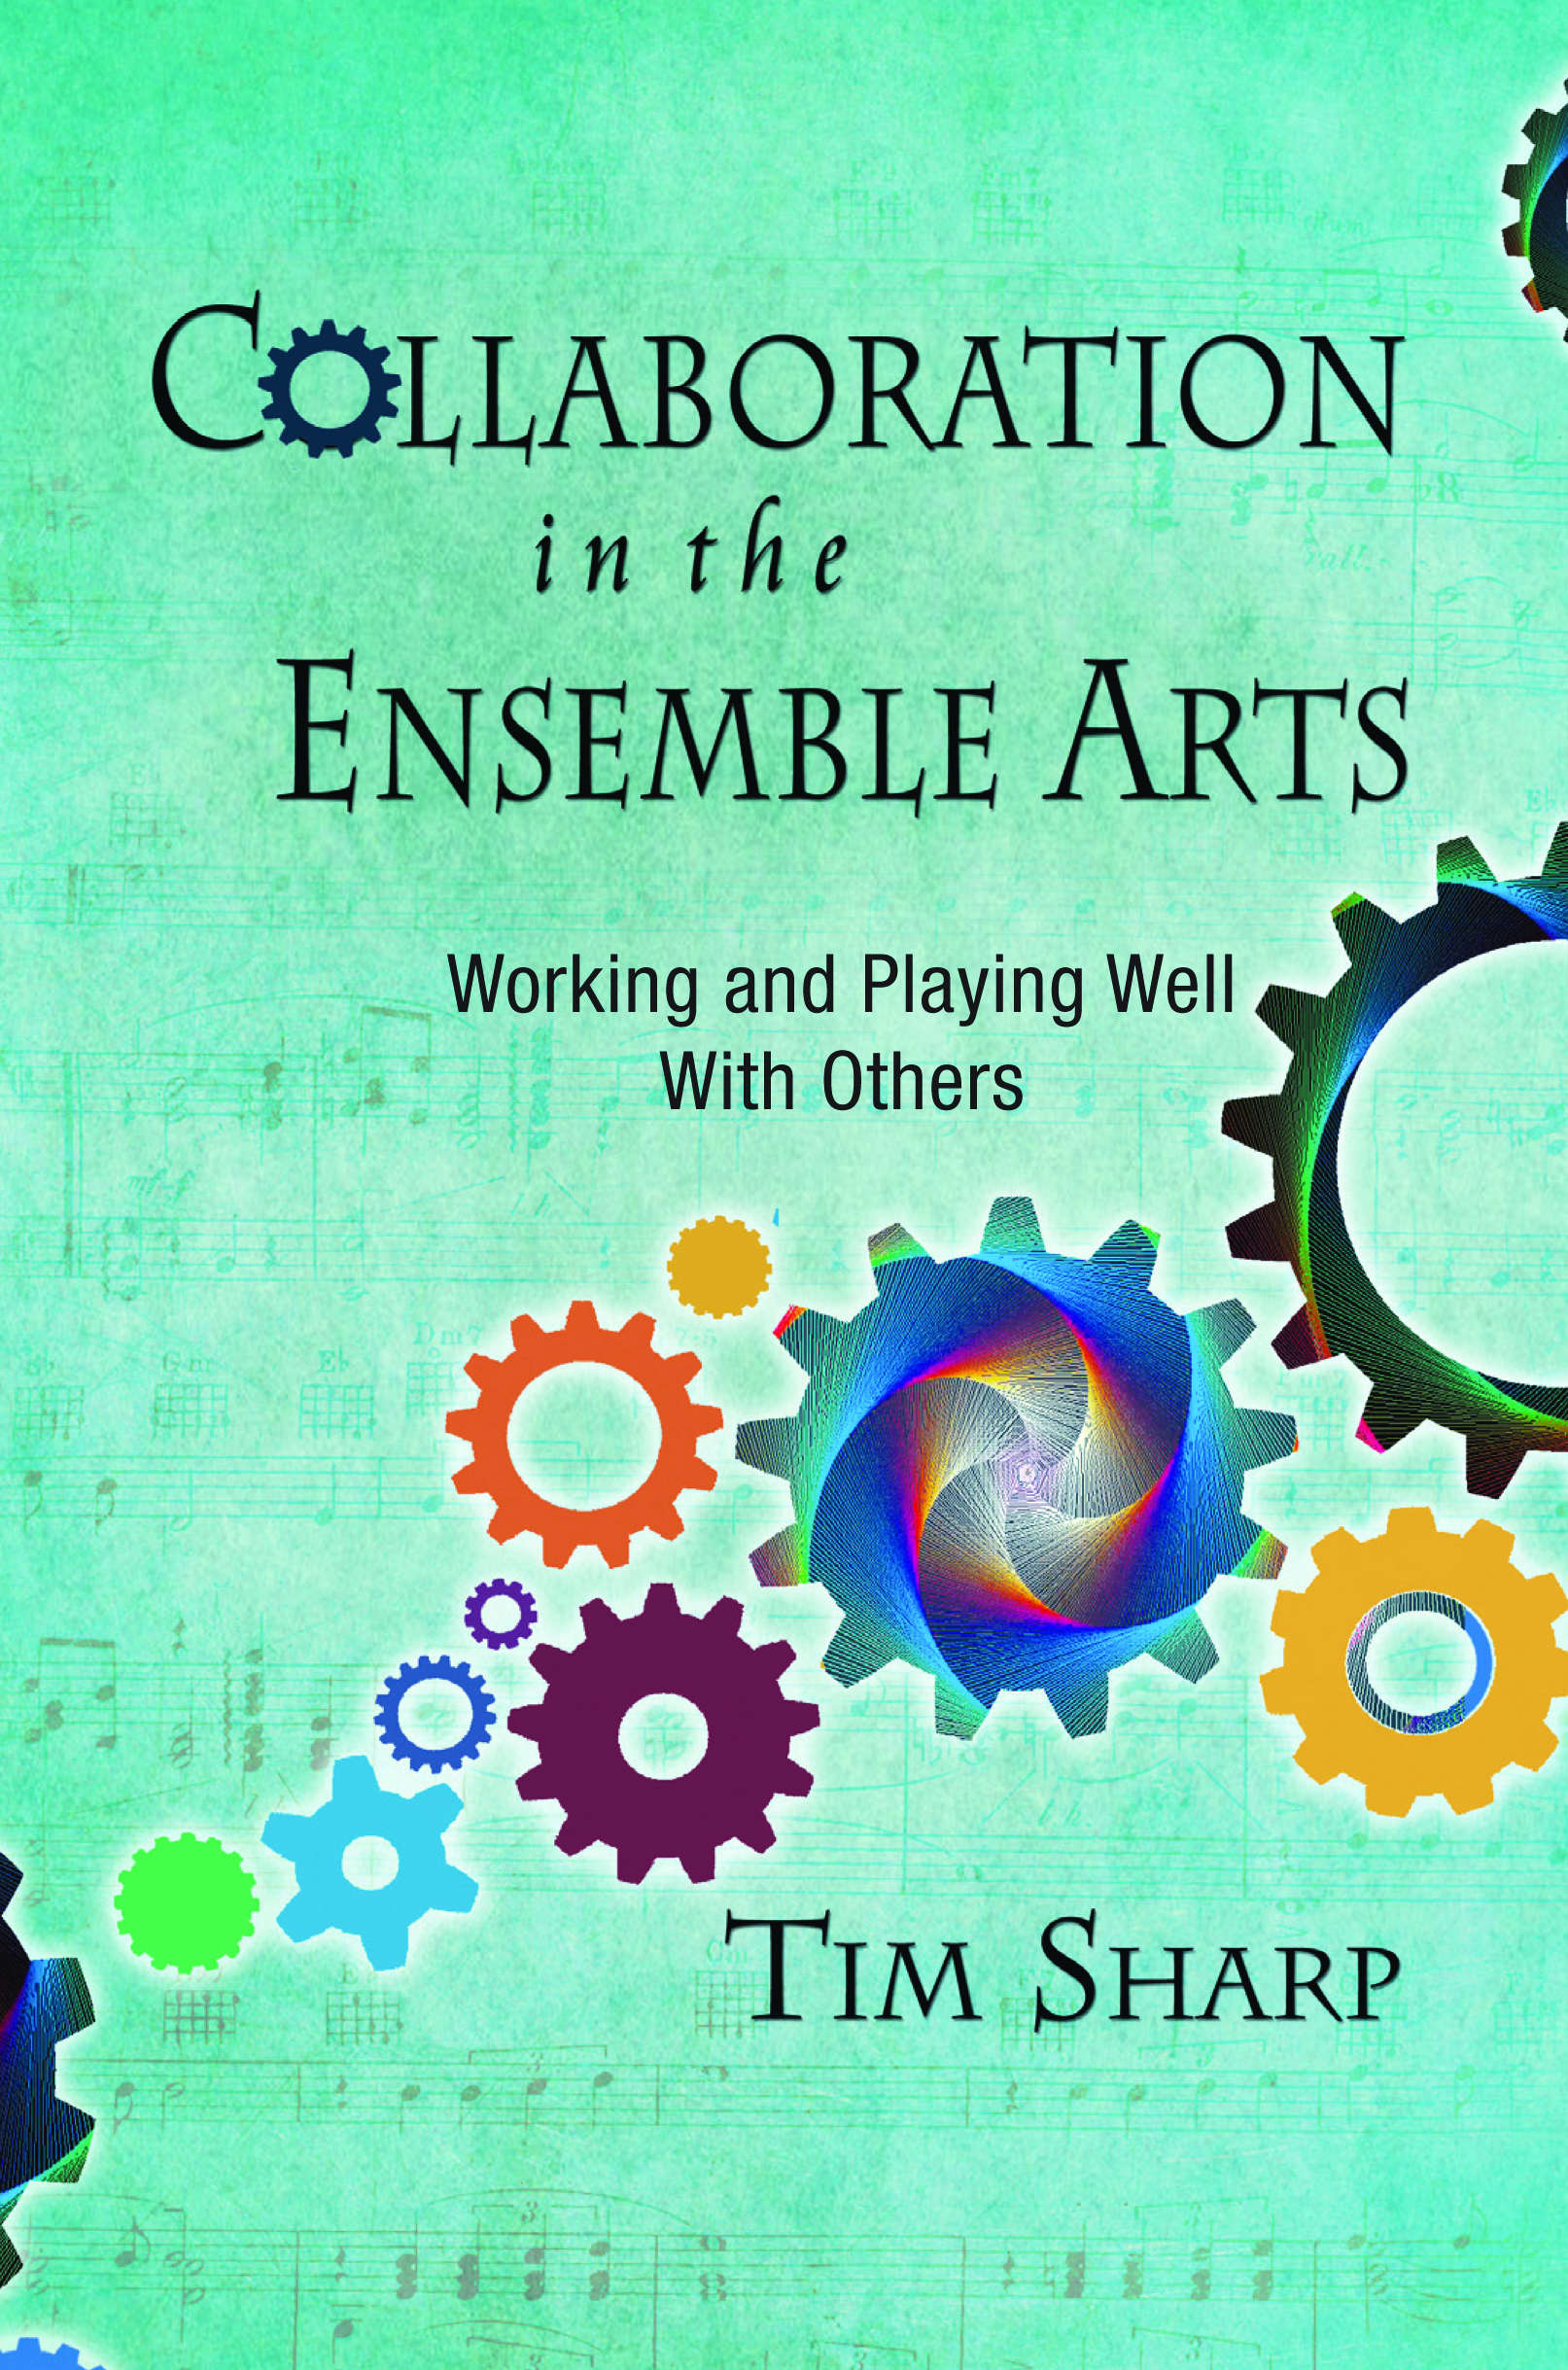 Collaboration in the Ensemble Arts: Working Well and Playing With Others